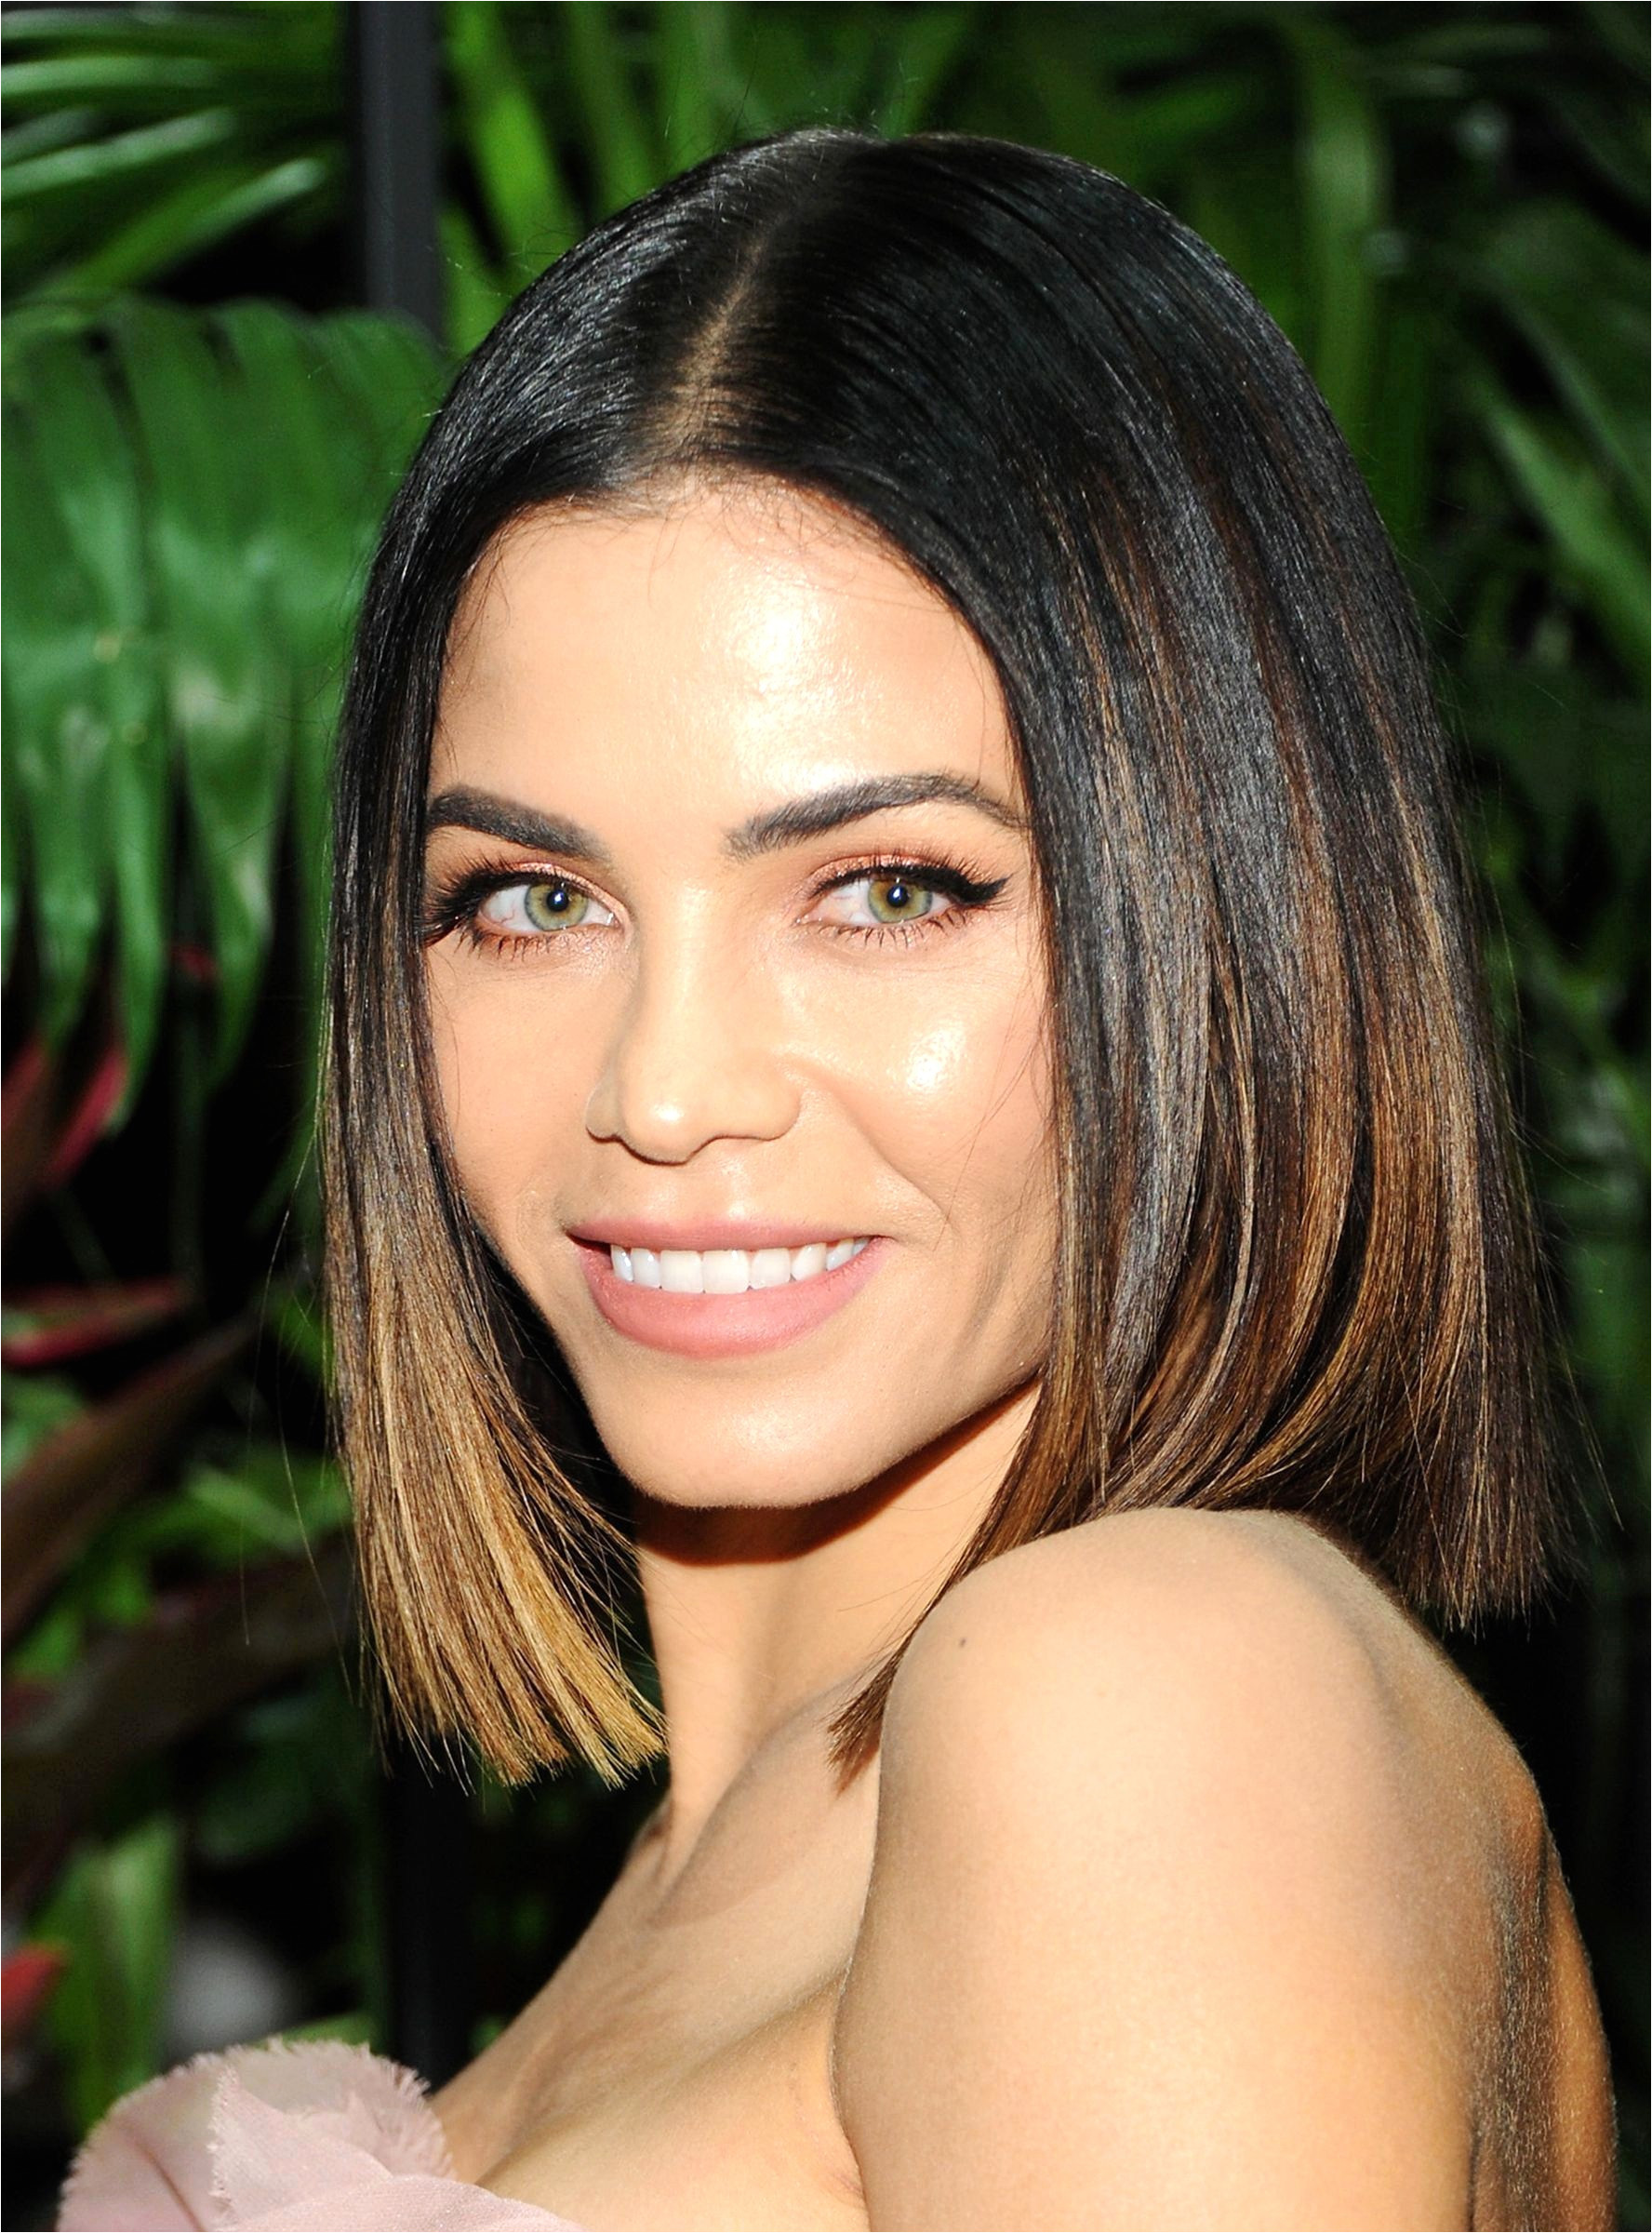 Girl Short Hairstyles for Round Faces Lovely Hairstyles for Round Faces Women Collection Short Hairstyles for